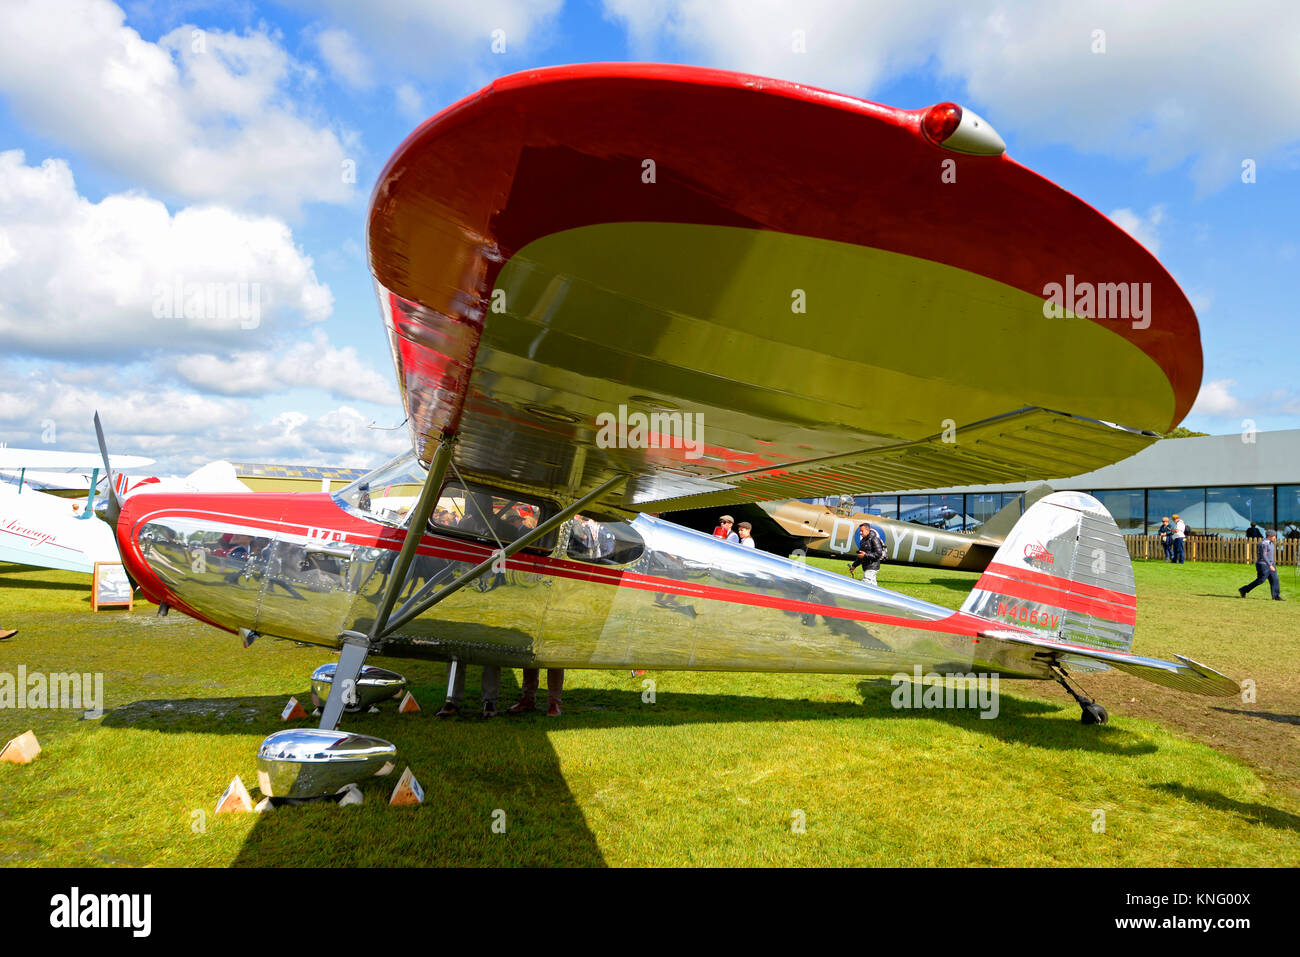 Cessna 170 high wing monoplane in the Freddie March Spirit of Aviation Goodwood Revival 2017 - Stock Image